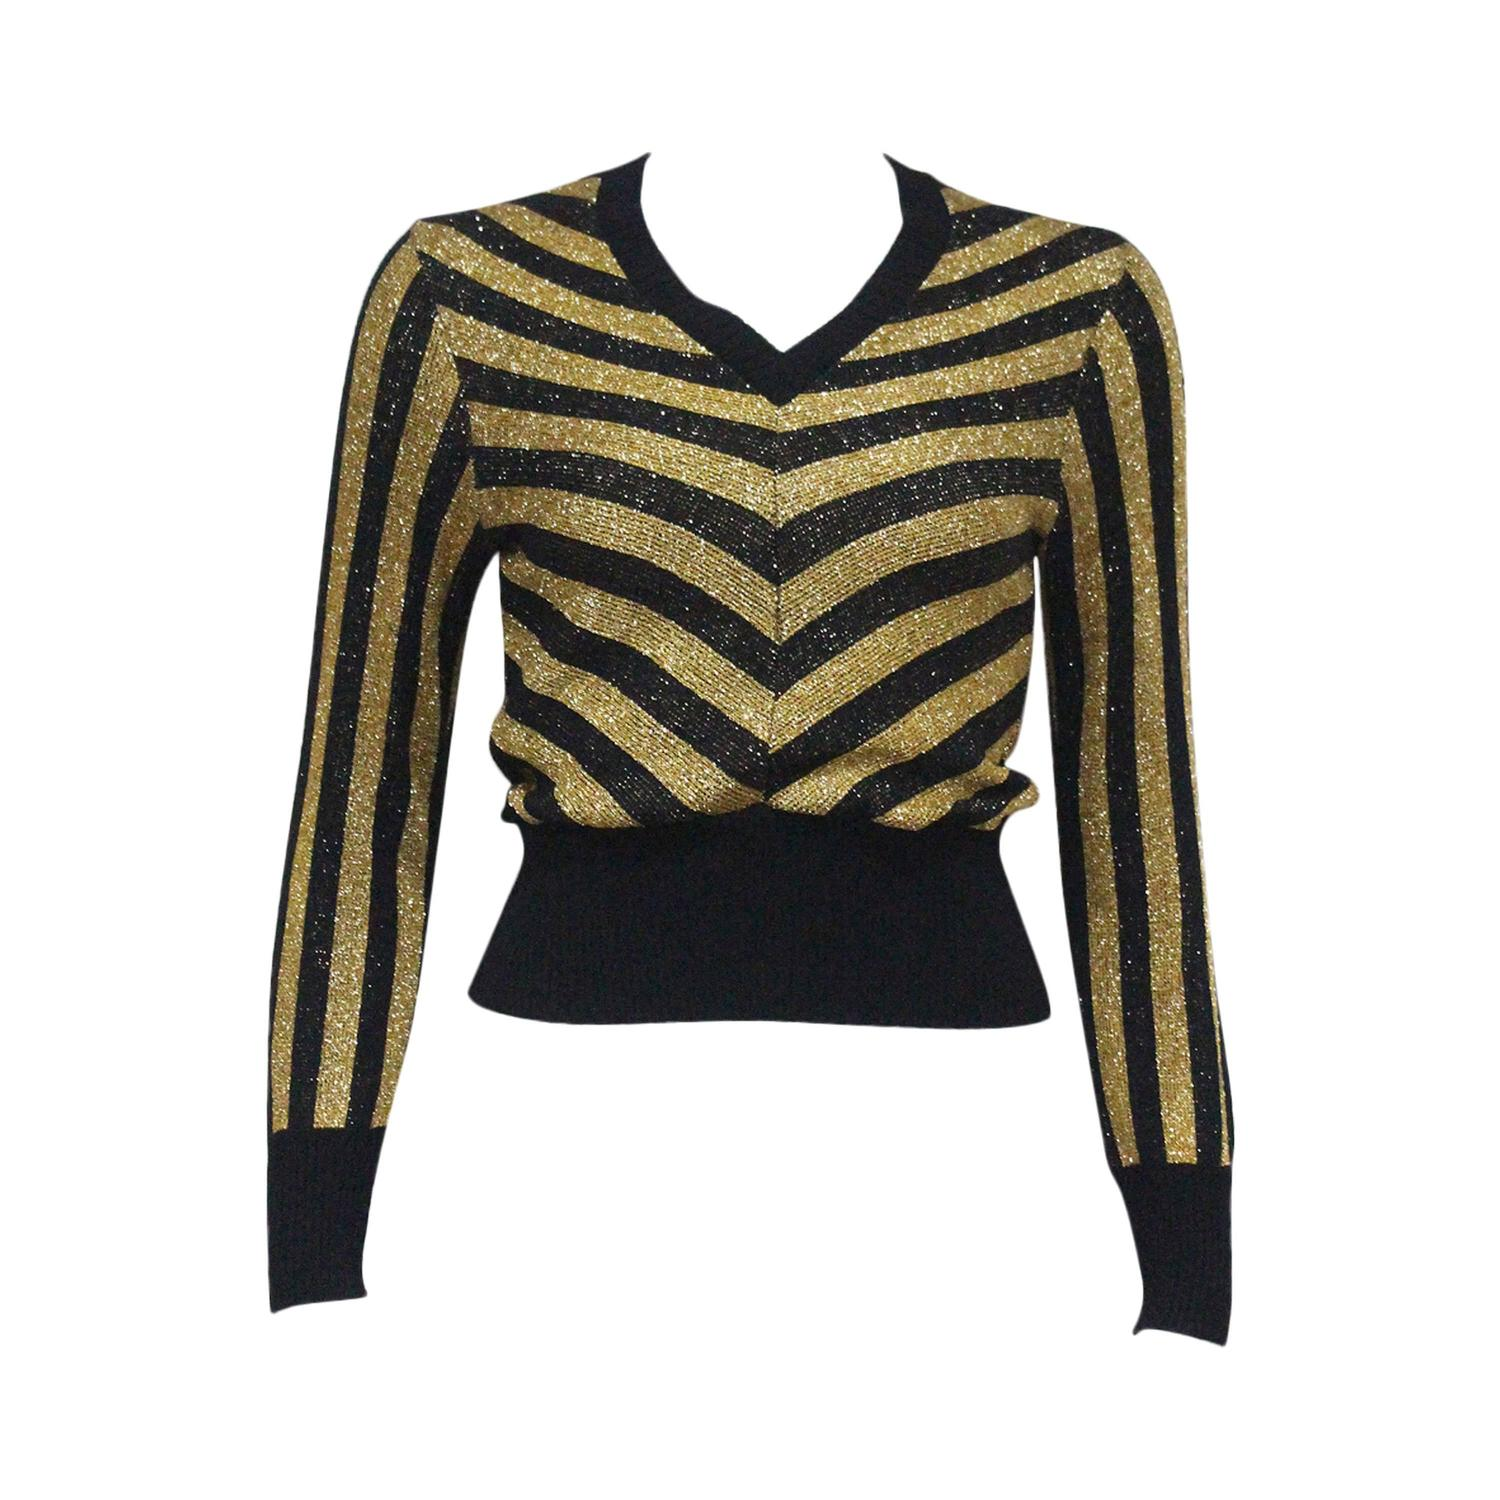 Shop our Collection of Women's Gold Cardigan Sweaters at gtacashbank.ga for the Latest Designer Brands & Styles. FREE SHIPPING AVAILABLE!